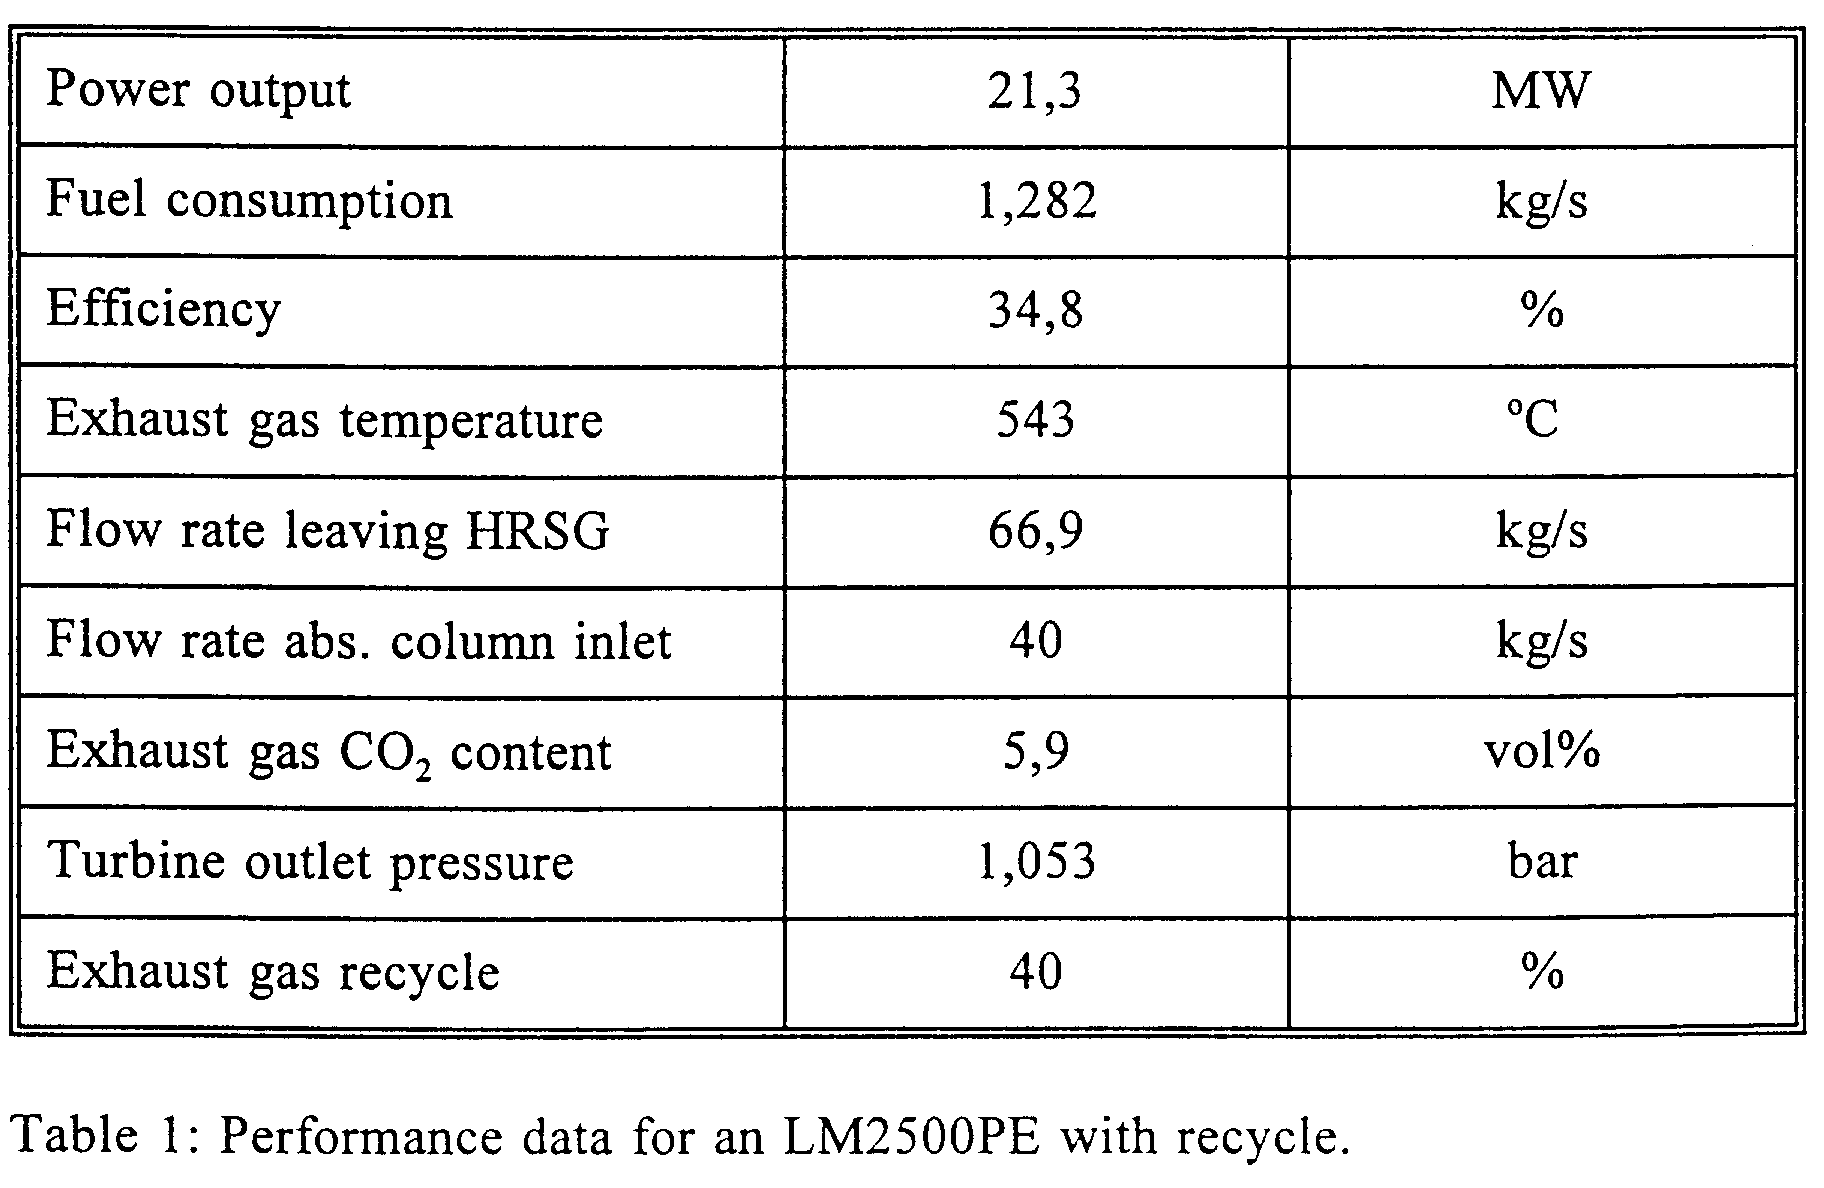 EP B1 A method for removing and preventing emissions into